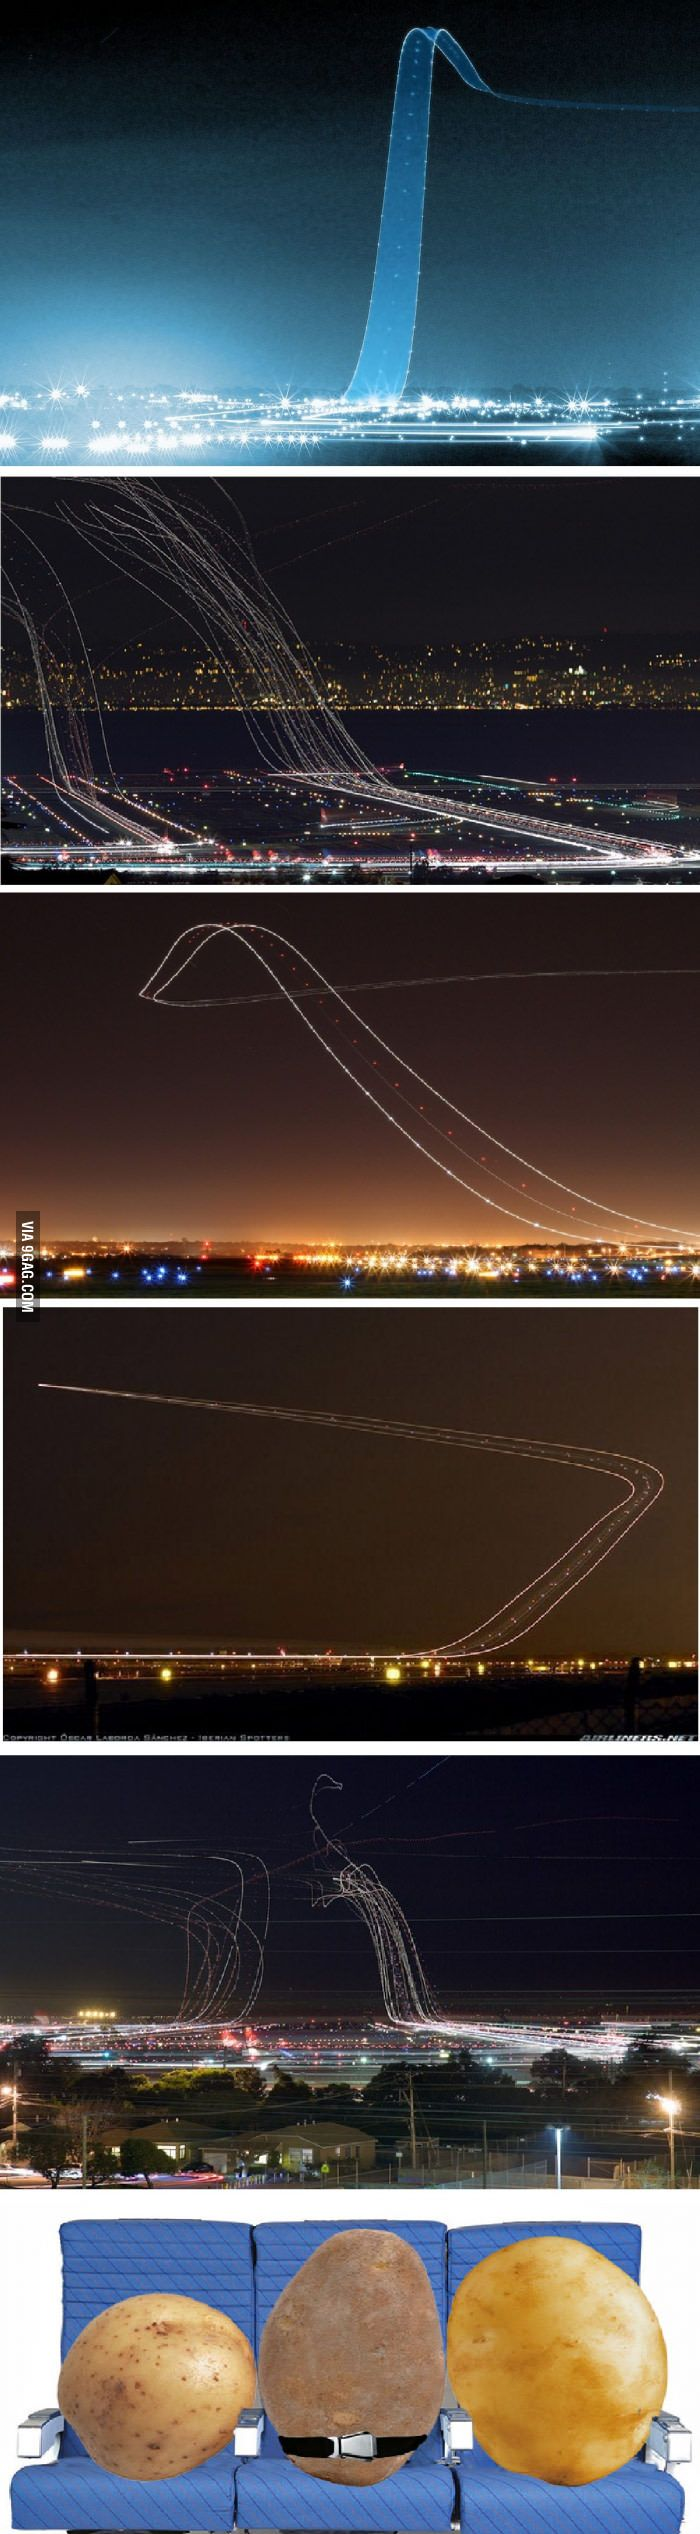 Long Exposures of Airliners taking off - 9GAG